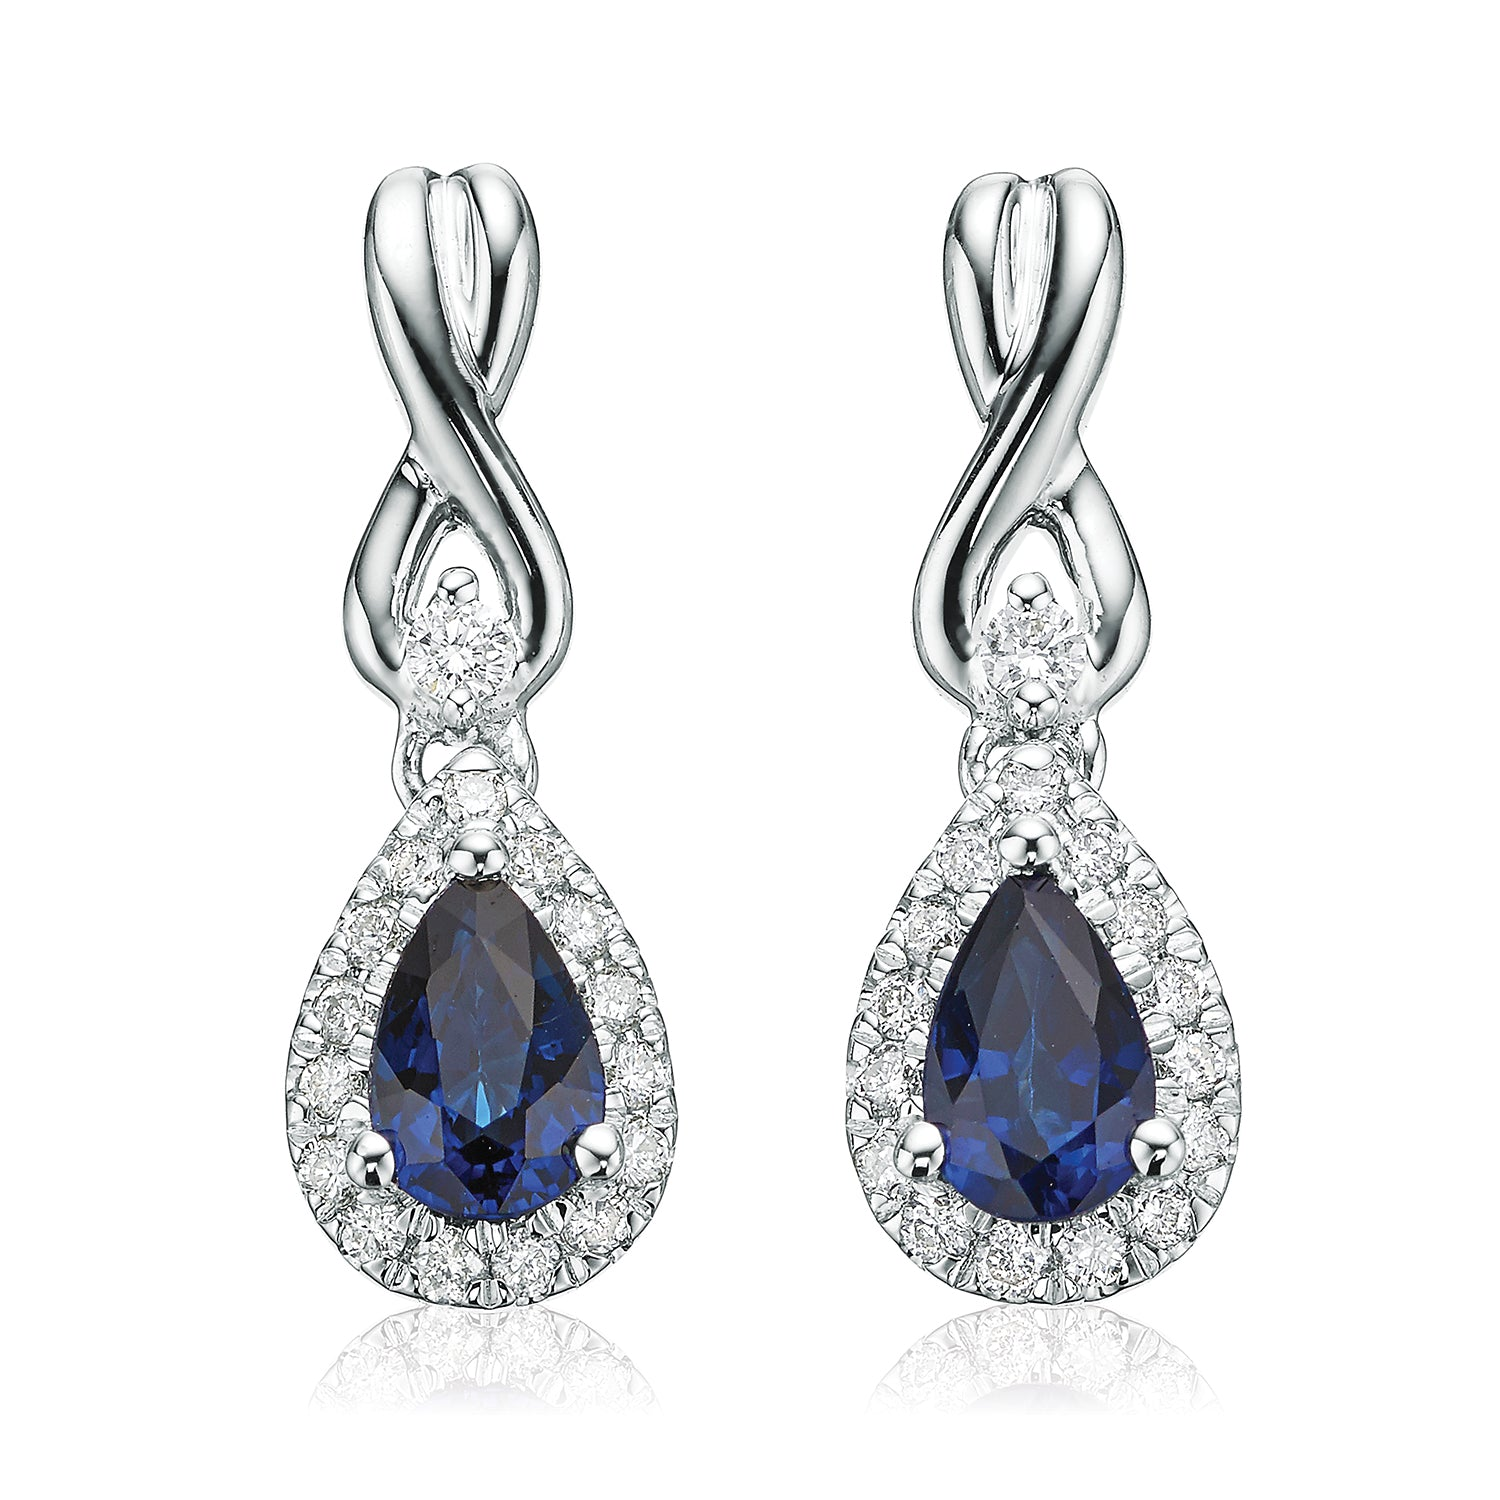 Vera Wang Love 18ct White Gold Pear Cut Sapphire with 0.16 CARAT tw of Diamonds